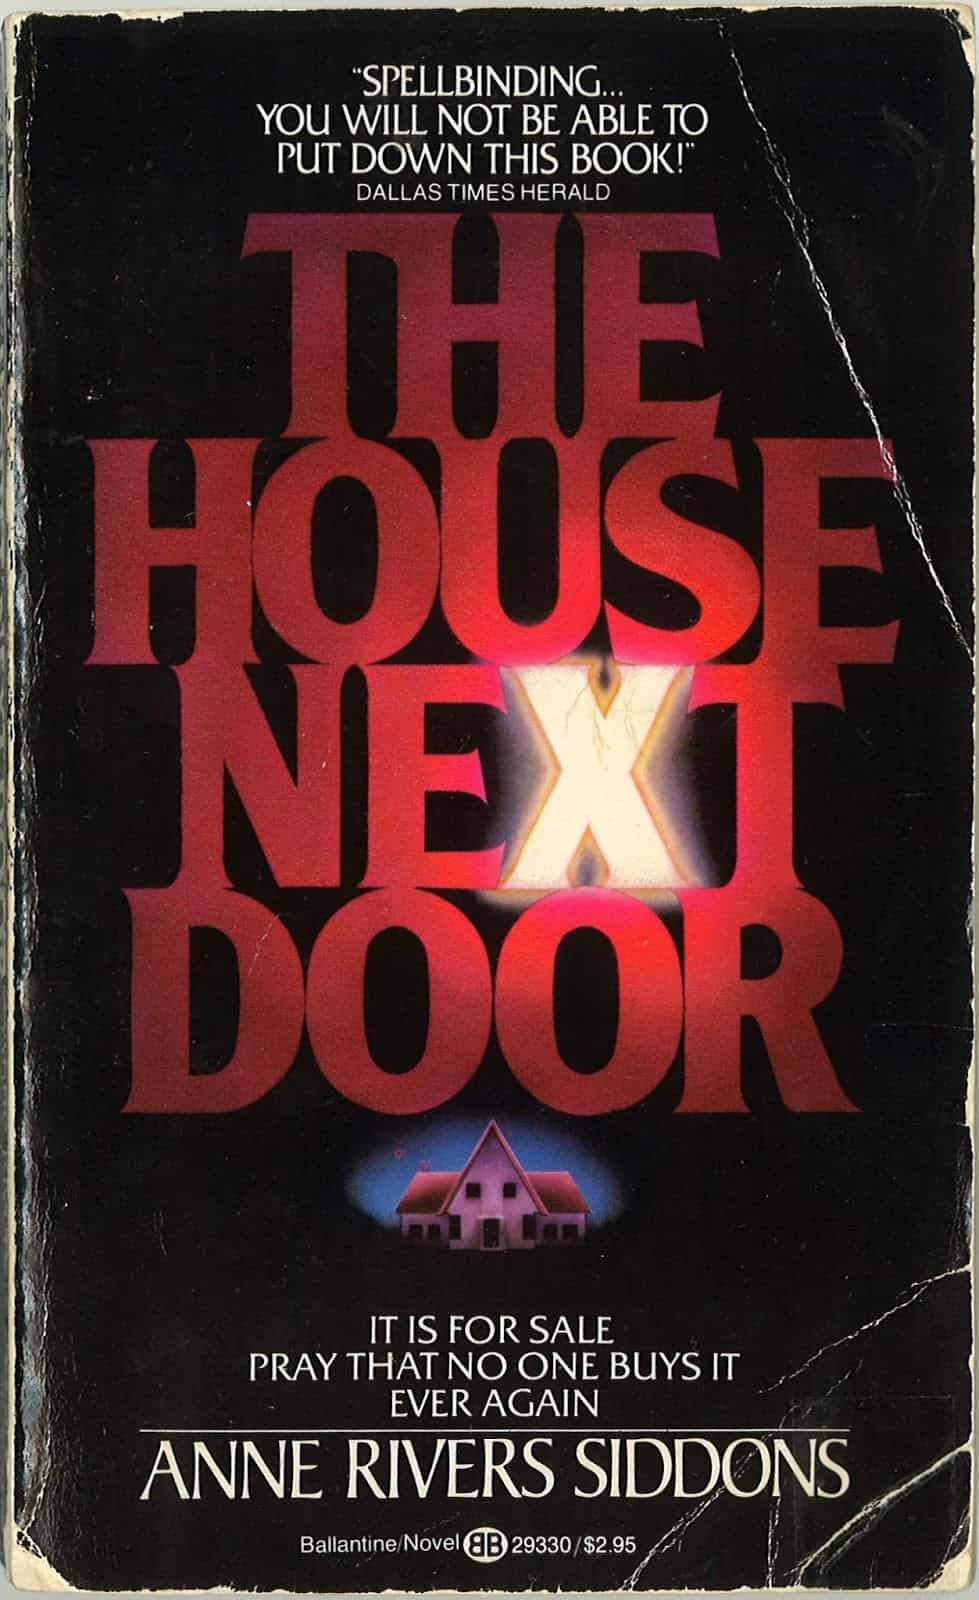 Sharon's Book Report: The House Next Door